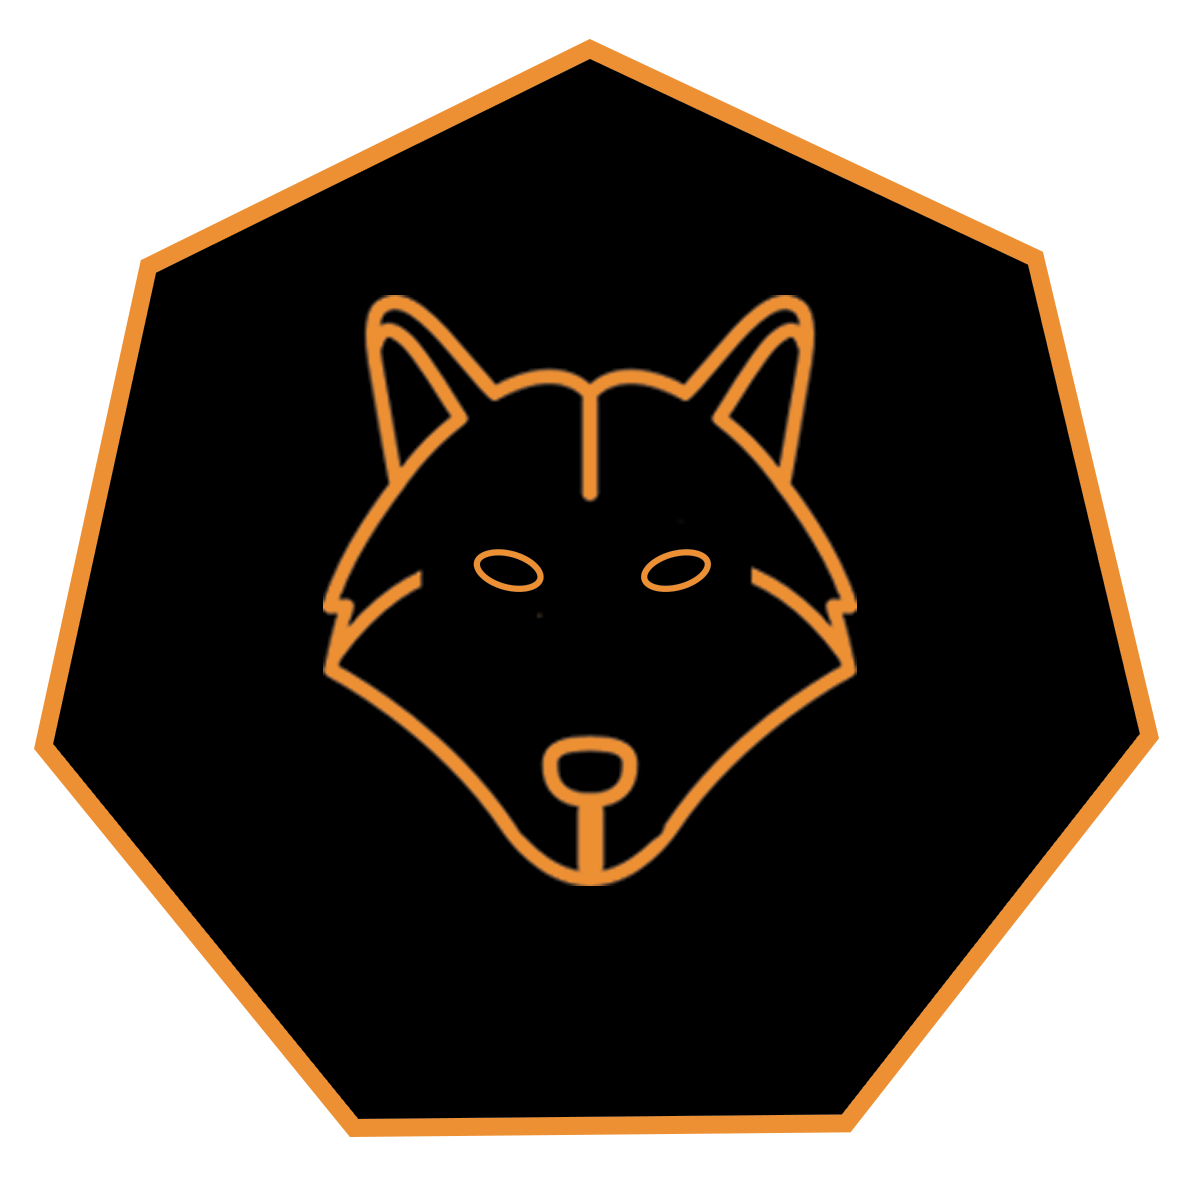 Athletico_Wolves_logo.png